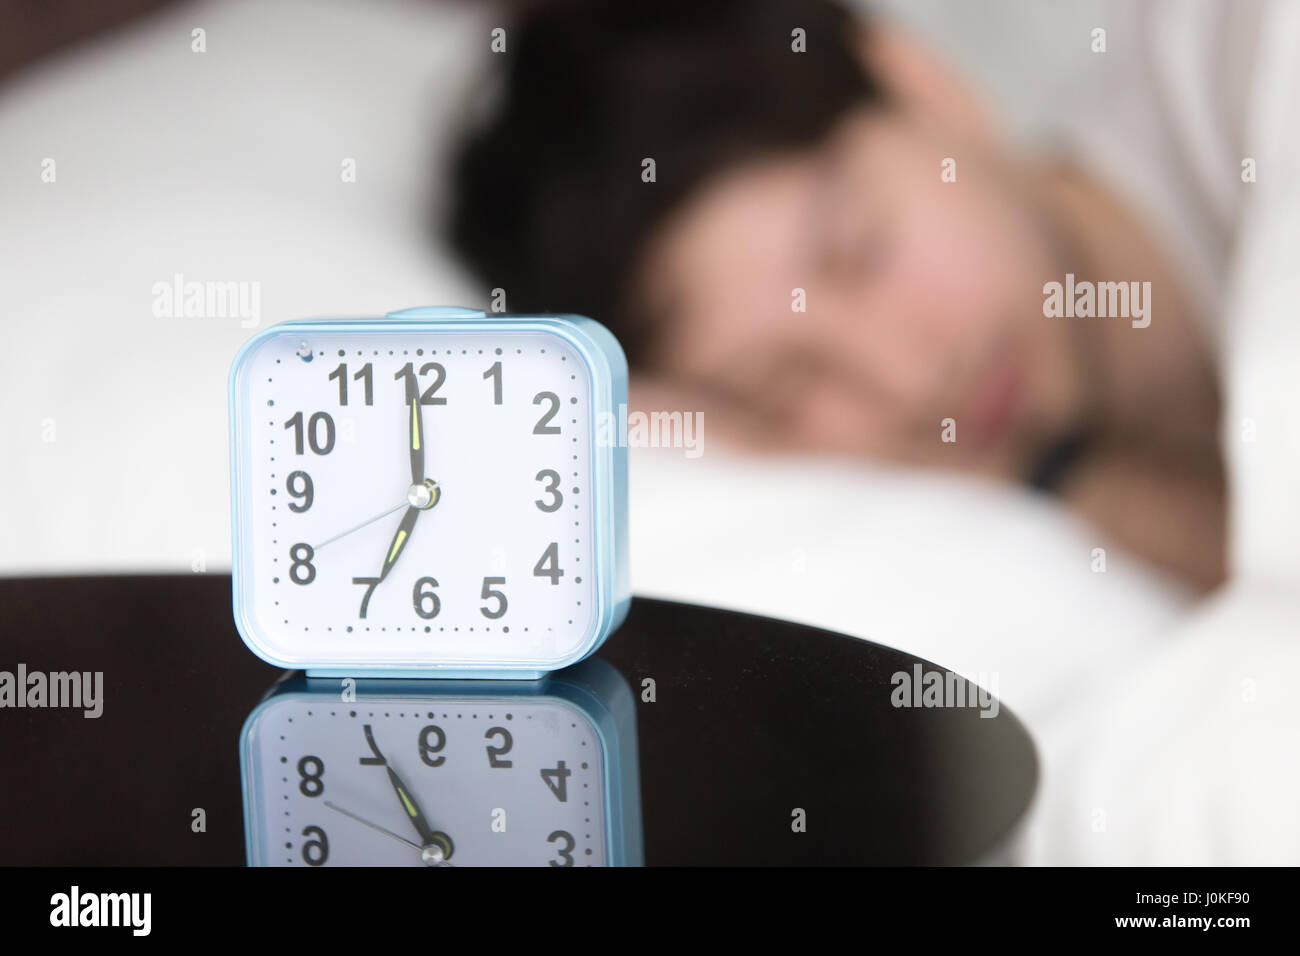 Young man sleeping in bed at home near alarm clock - Stock Image